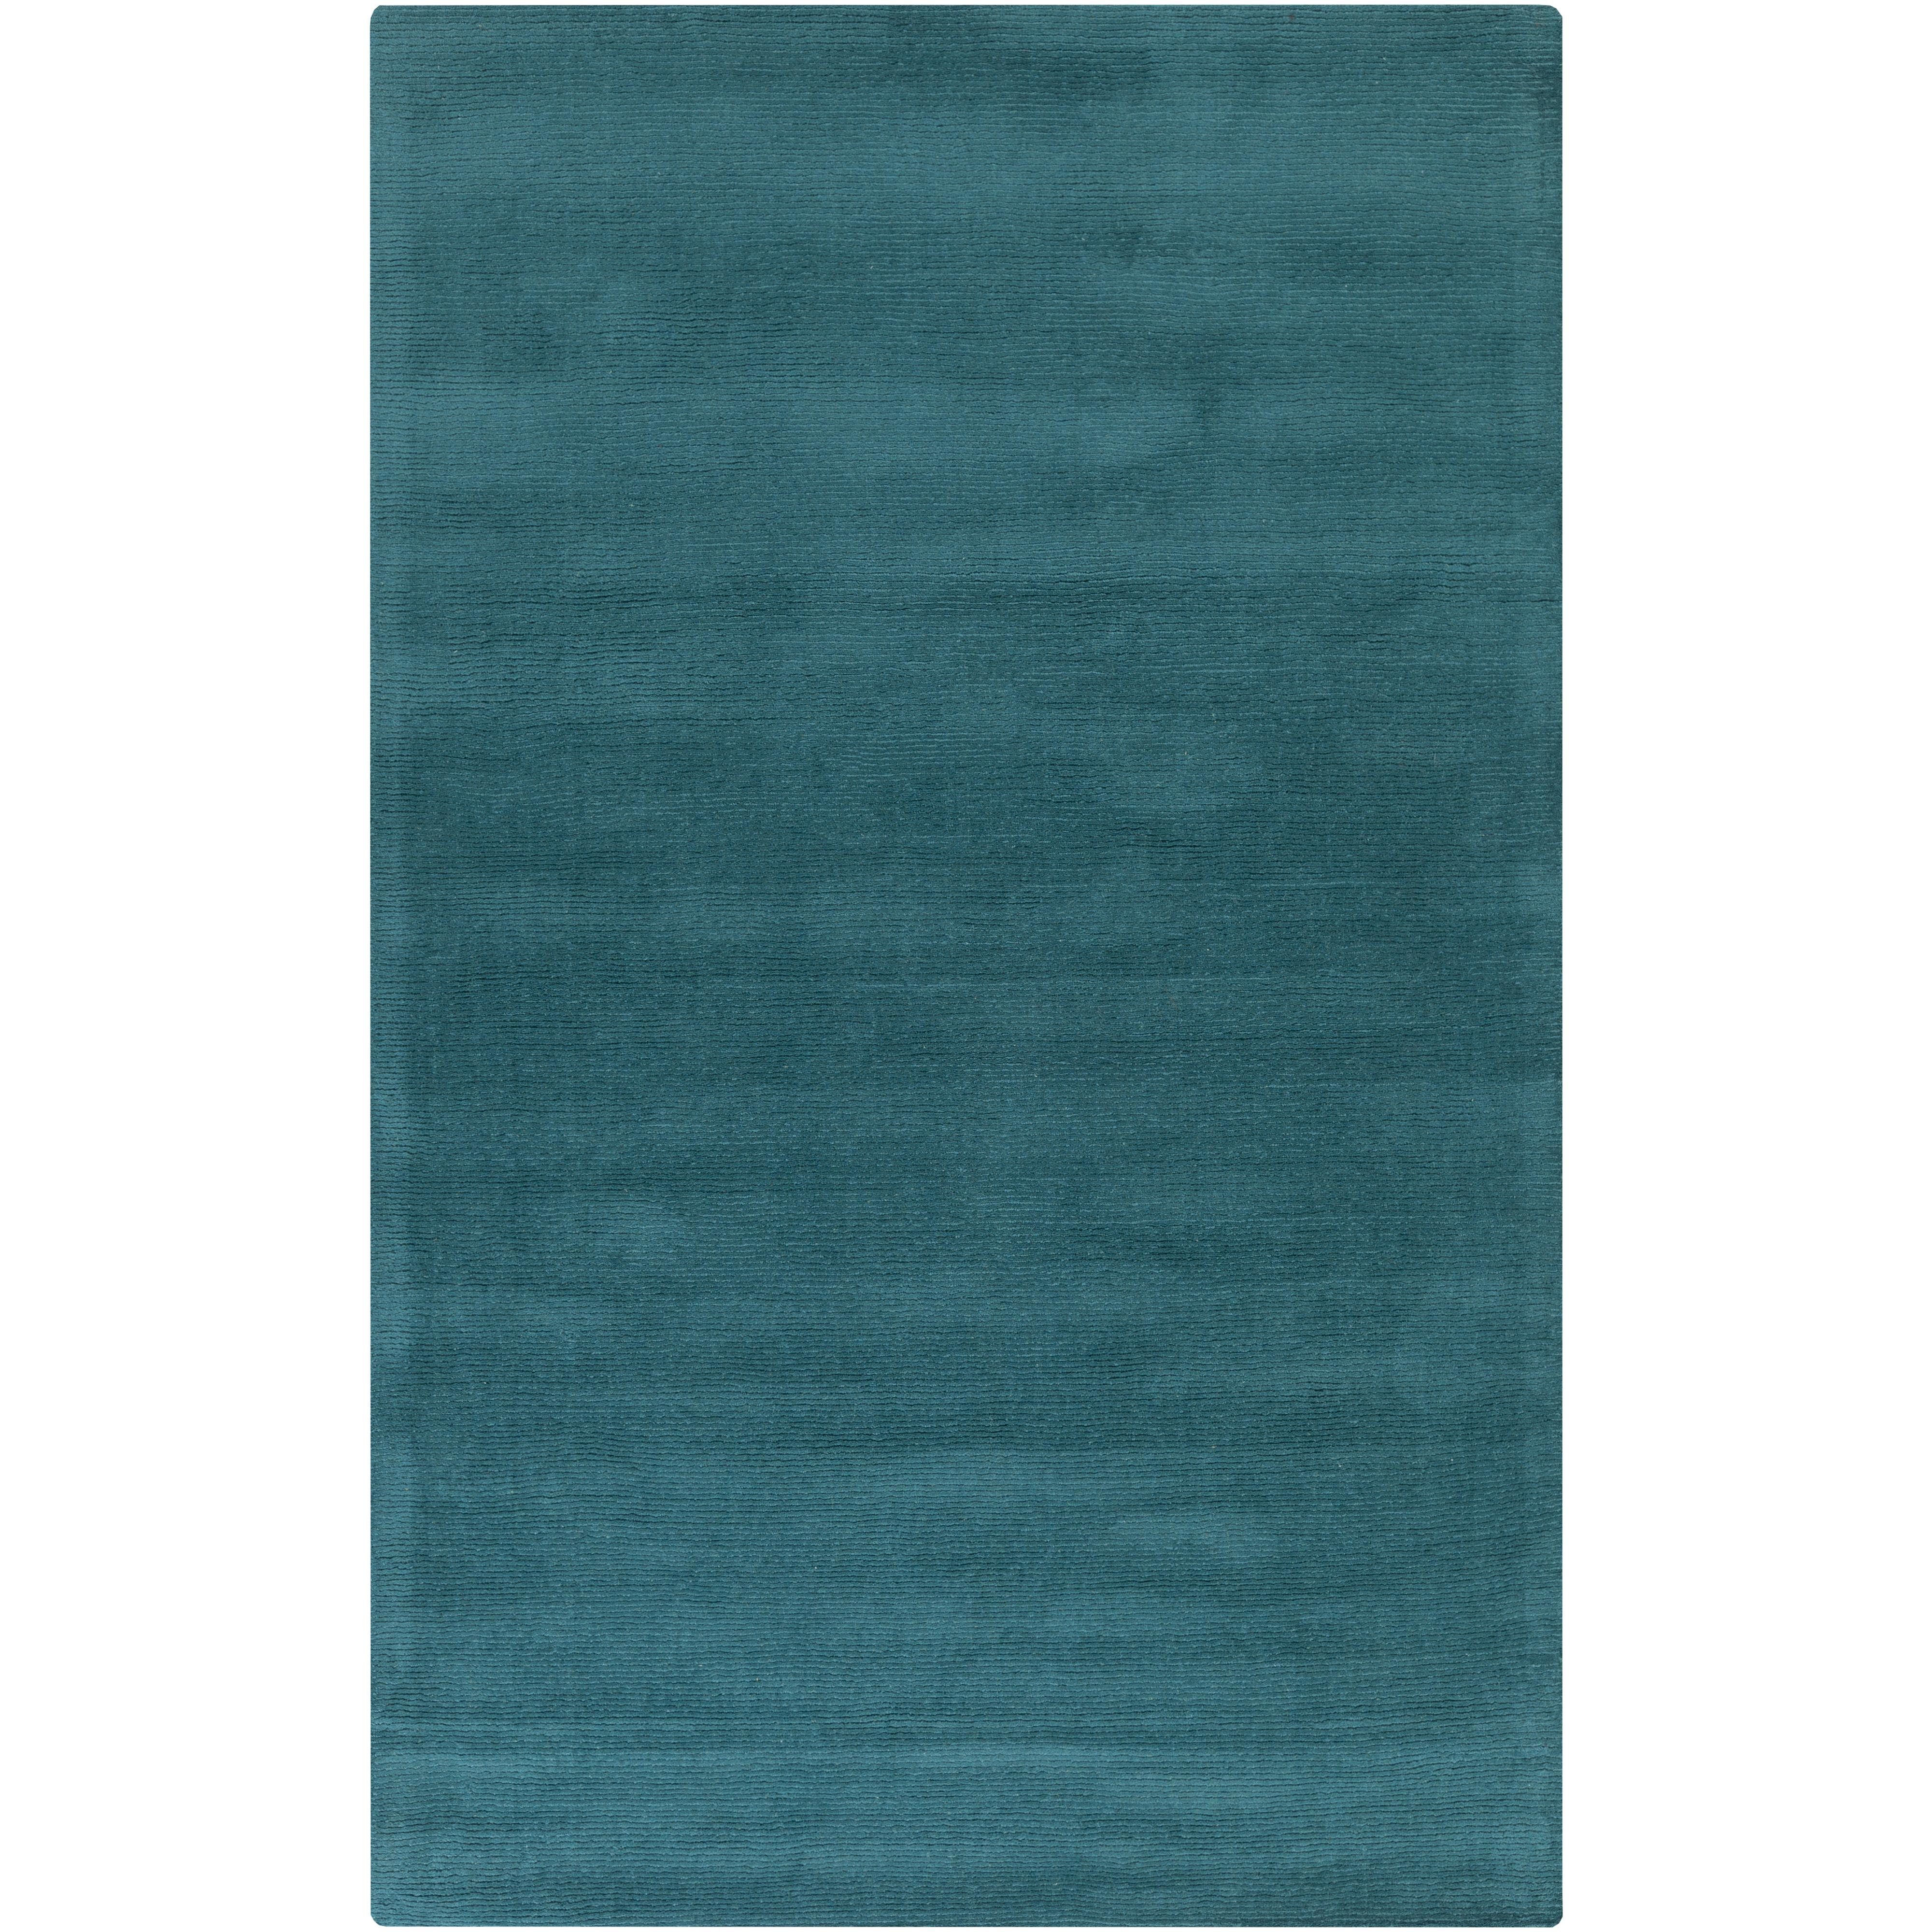 Surya Mystique 6' x 9' - Item Number: M5330-69